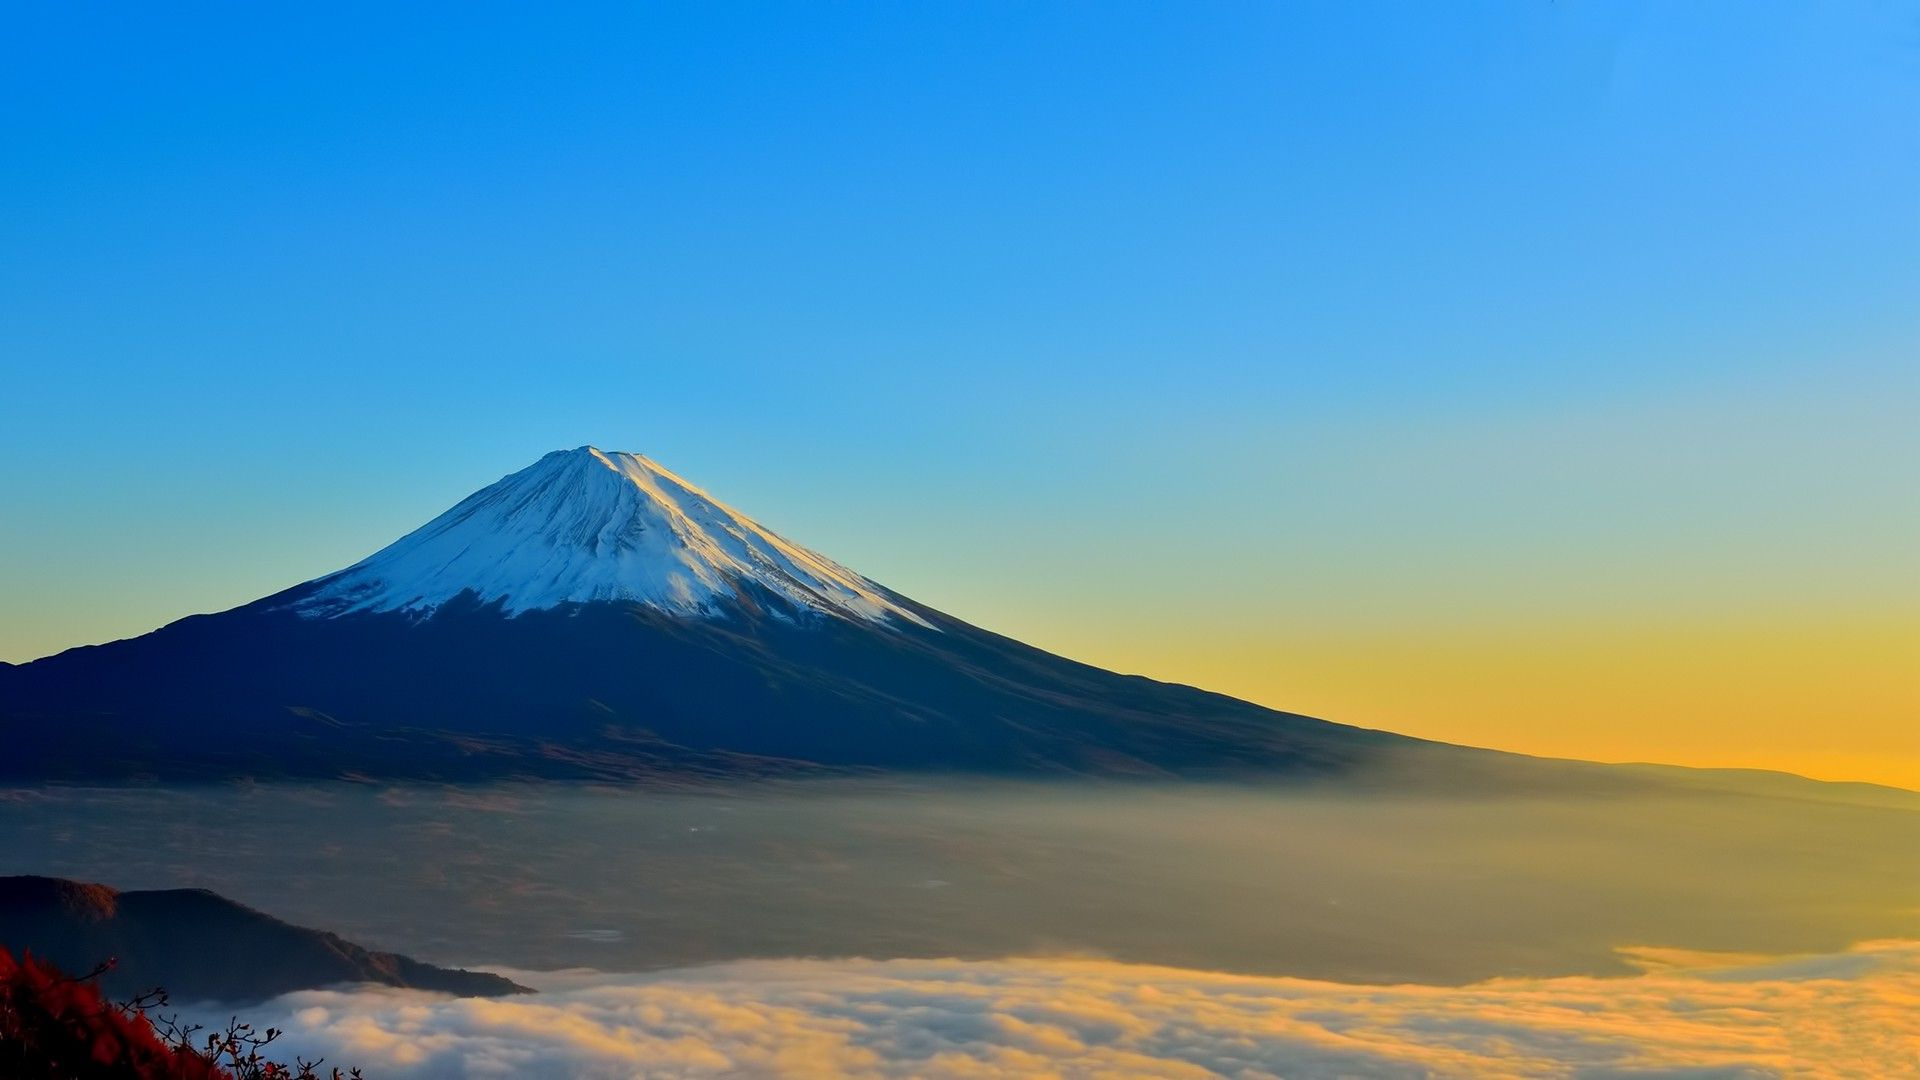 Mount Fuji Hd Pretty Wallpapers Top Free Mount Fuji Hd